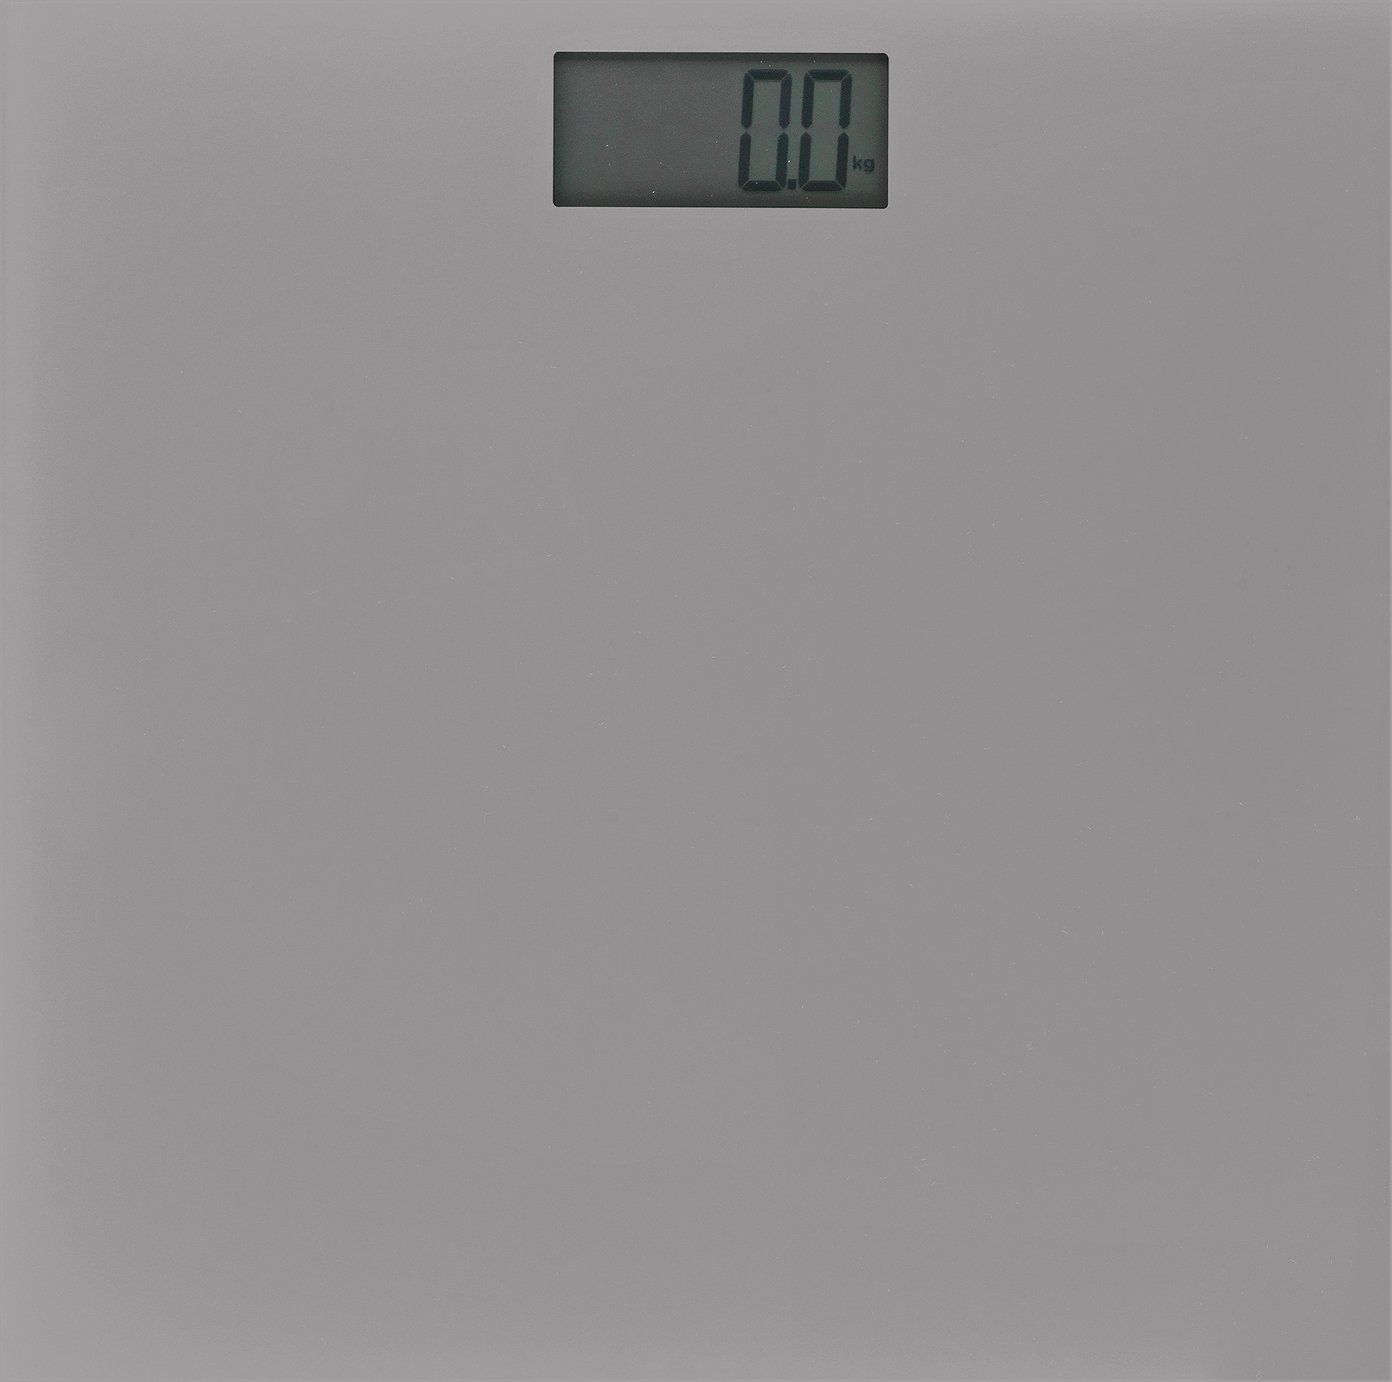 Image of ColourMatch Electronic Scales - Flint Grey